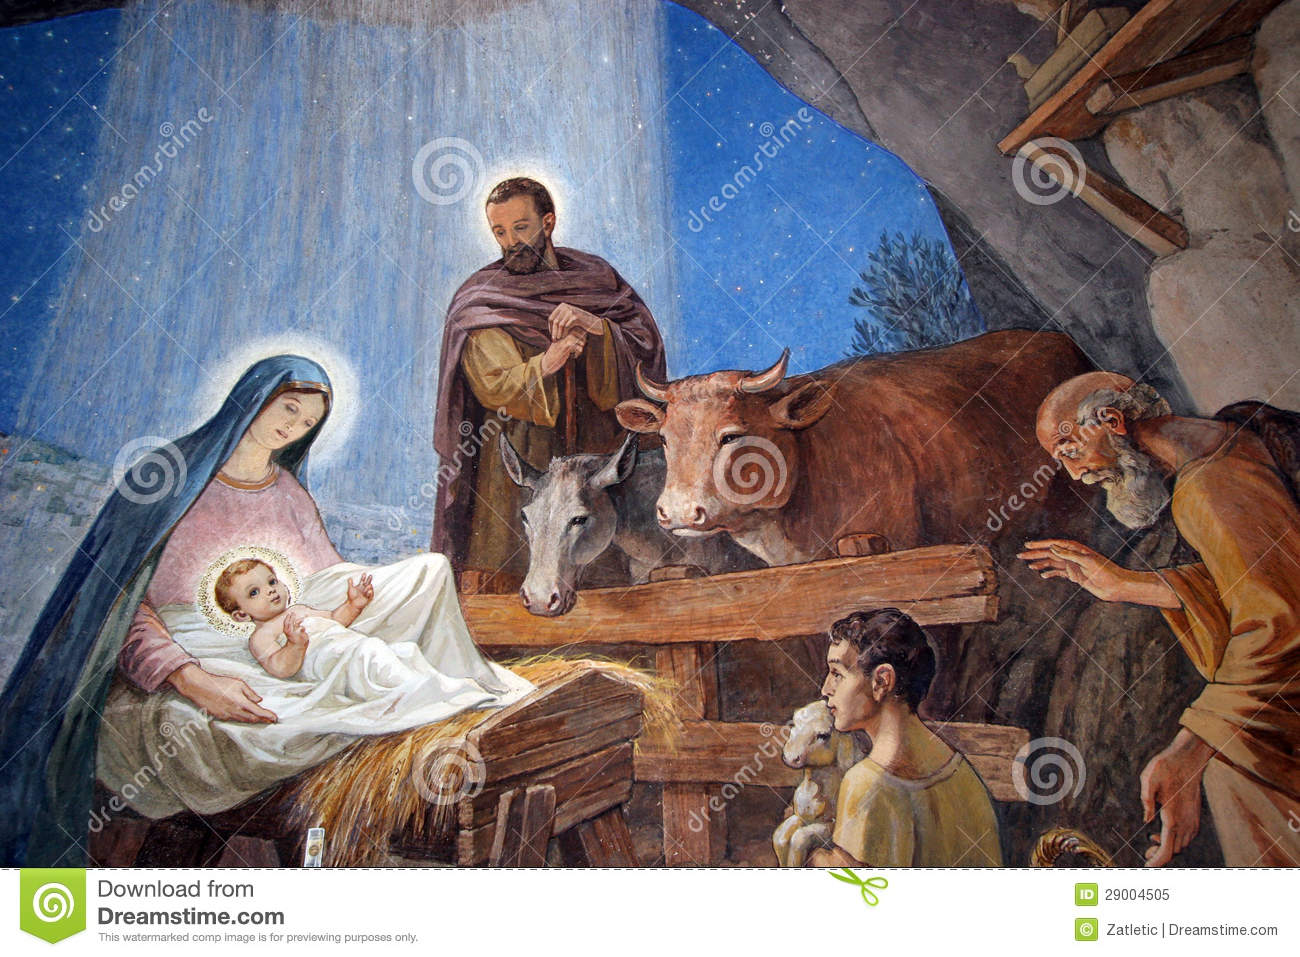 Nativity Scene Royalty Free Stock Photo - Image: 29004505